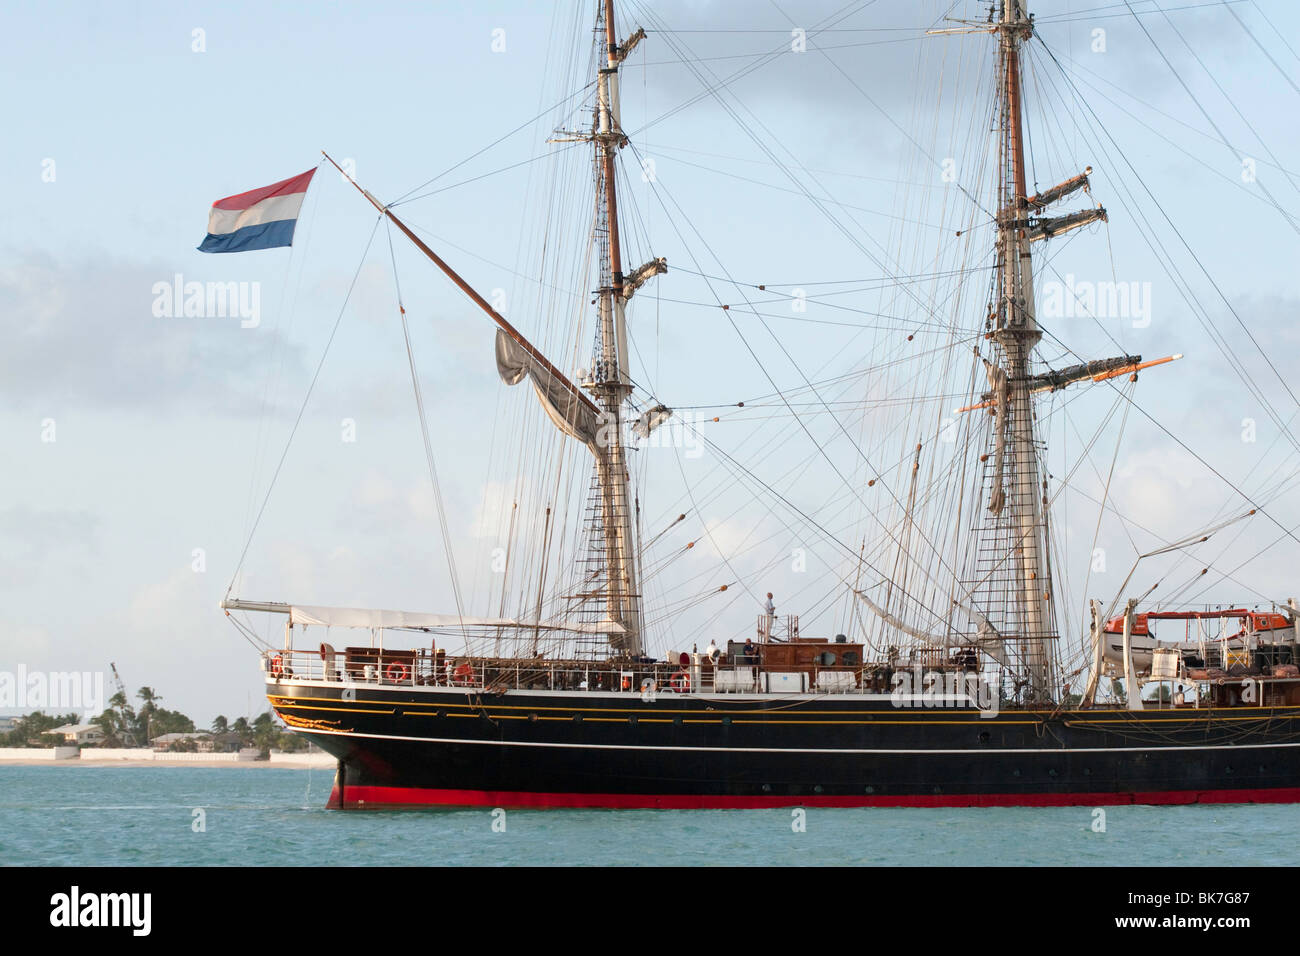 The square-rigged ship STAD AMSTERDAM in port at Simpson Bay, Sint Maarten - Stock Image